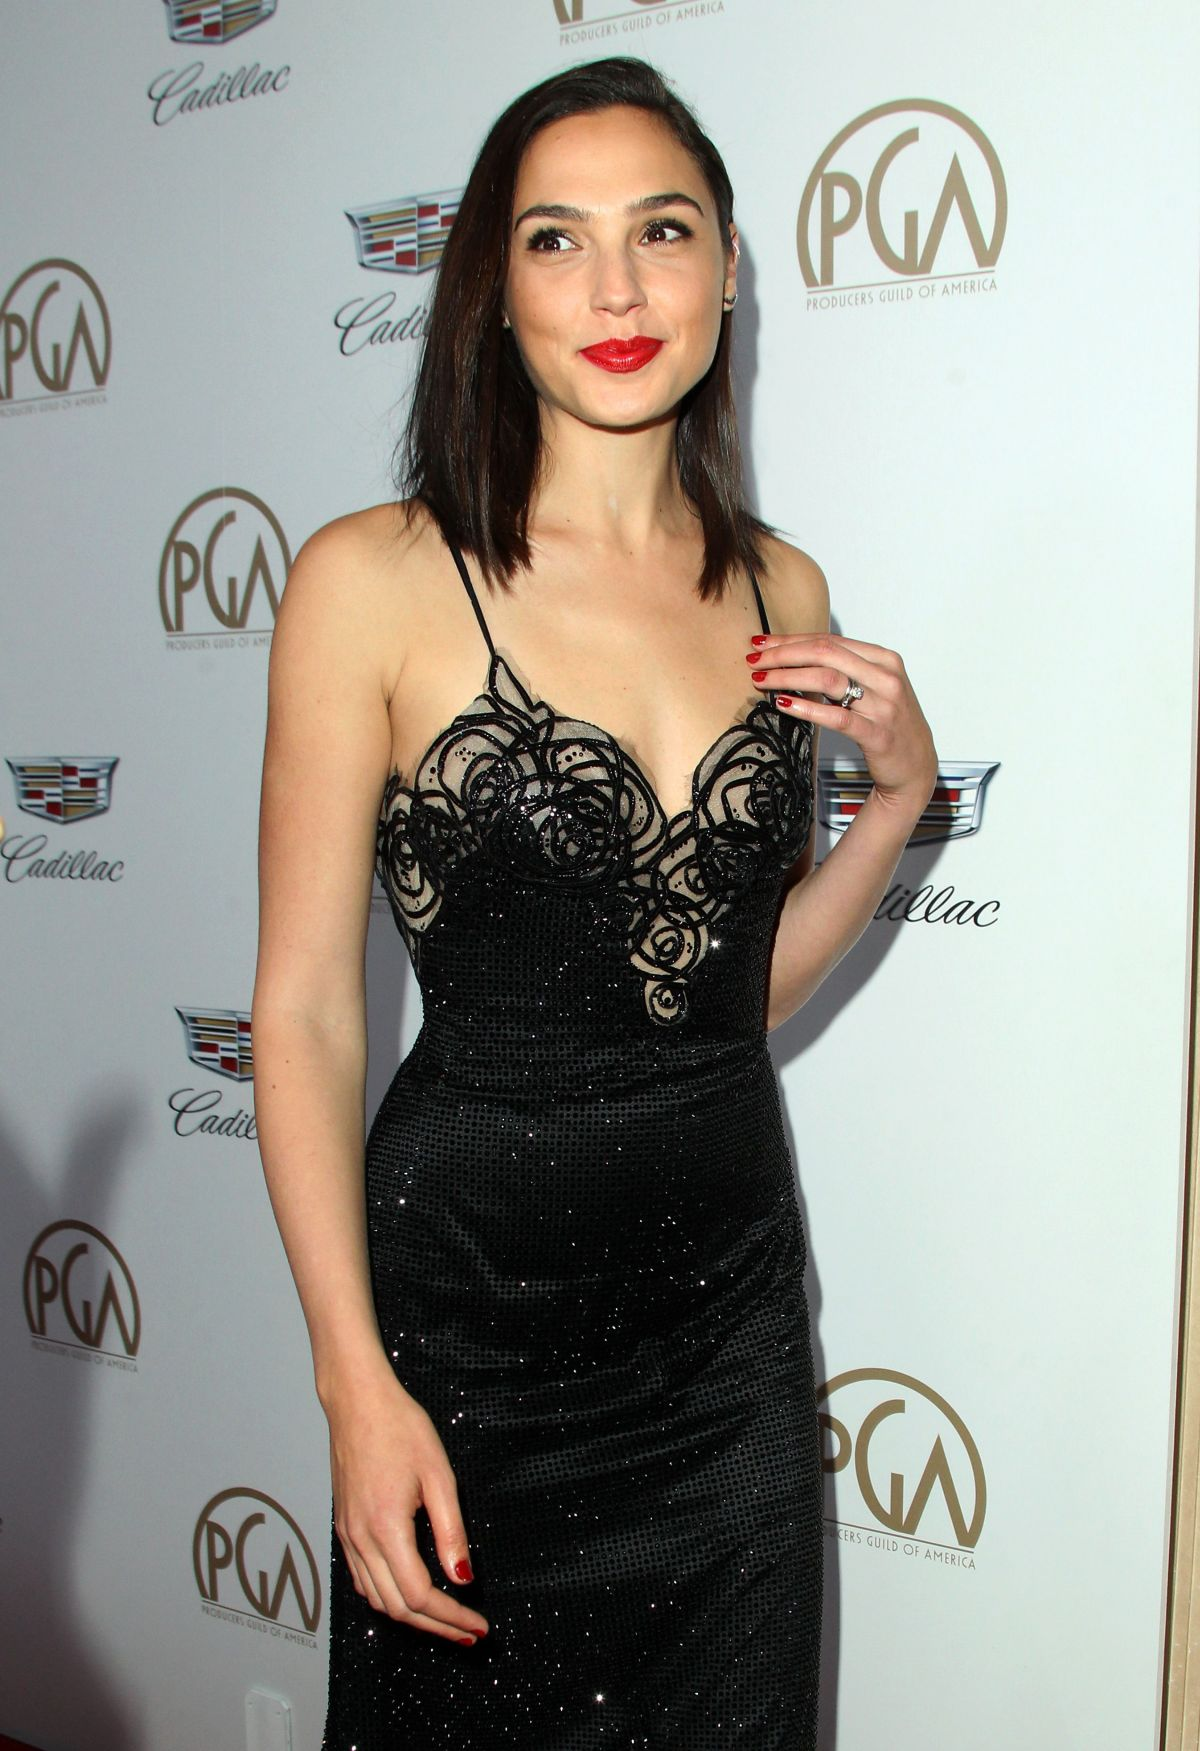 GAL GADOT at Producers Guild Awards 2018 in Beverly Hills 01\/20\/2018 - HawtCelebs